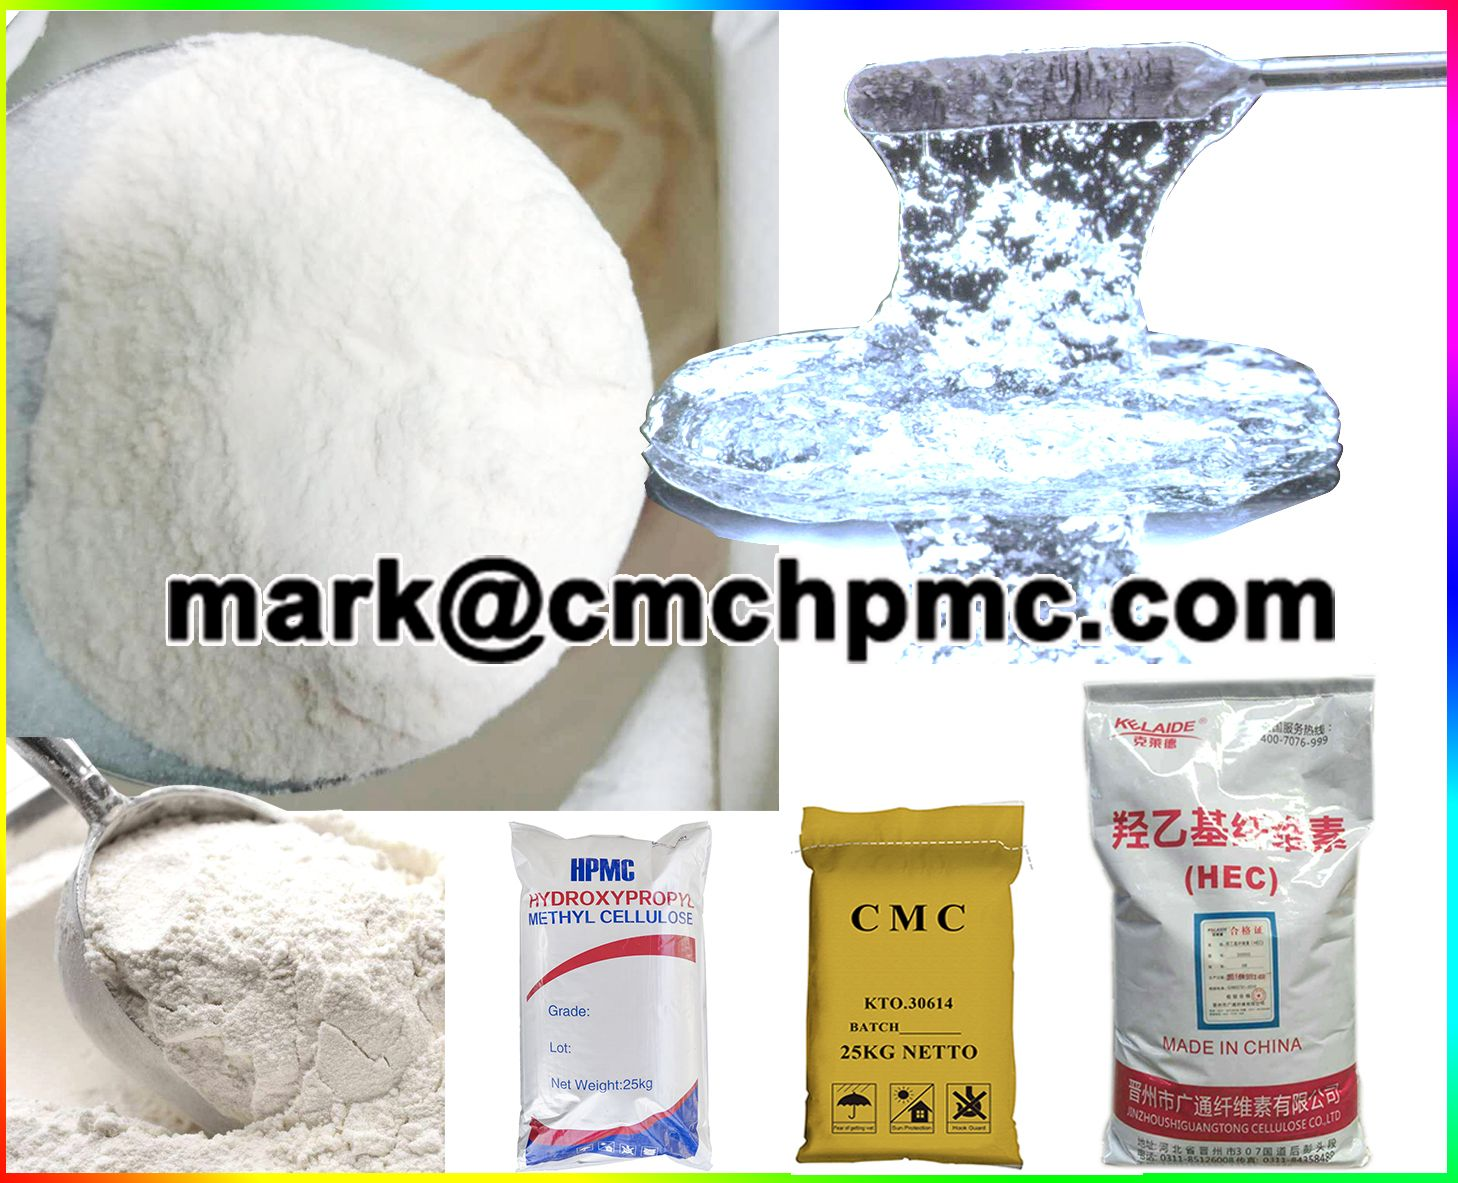 Hydroxypropyl Methyl Cellulose Hpmc Detergent Thickener Masonry Mortar Tile Adhesive Cellulose Ether Methyl Cellulose Adhesive Tiles Methylation